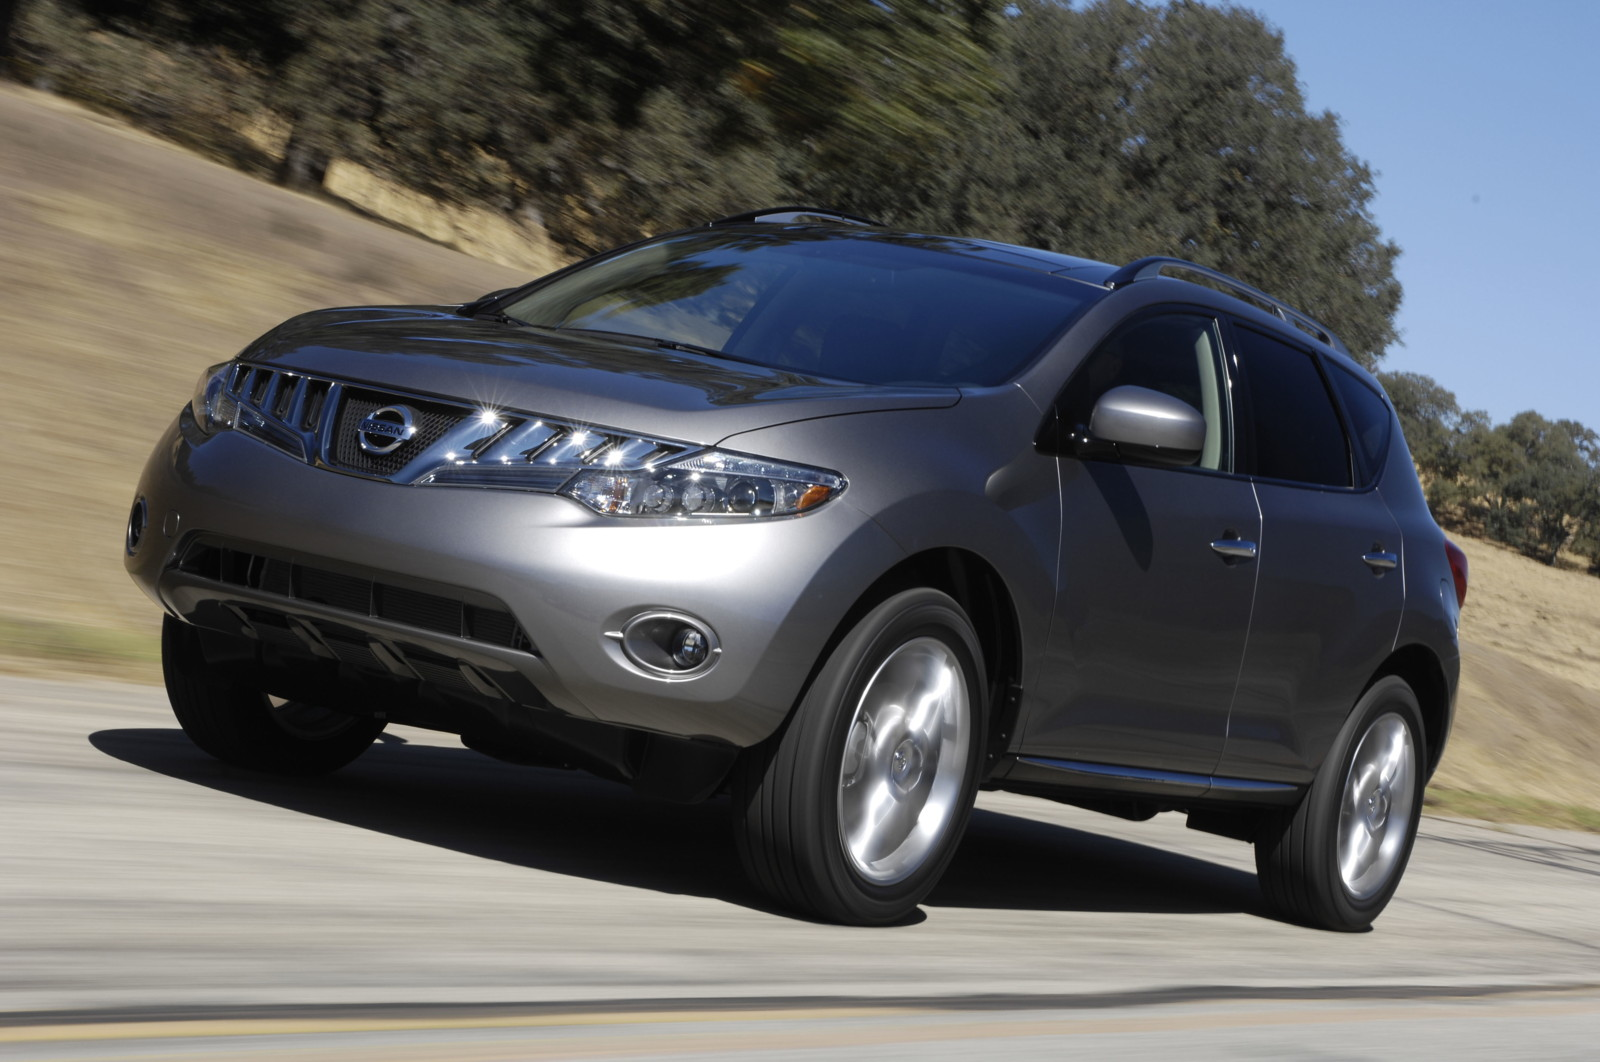 The 2010 nissan murano le is the perfect business class answer to the 2010 nissan murano le is the perfect business class answer to all your family needs vanachro Image collections